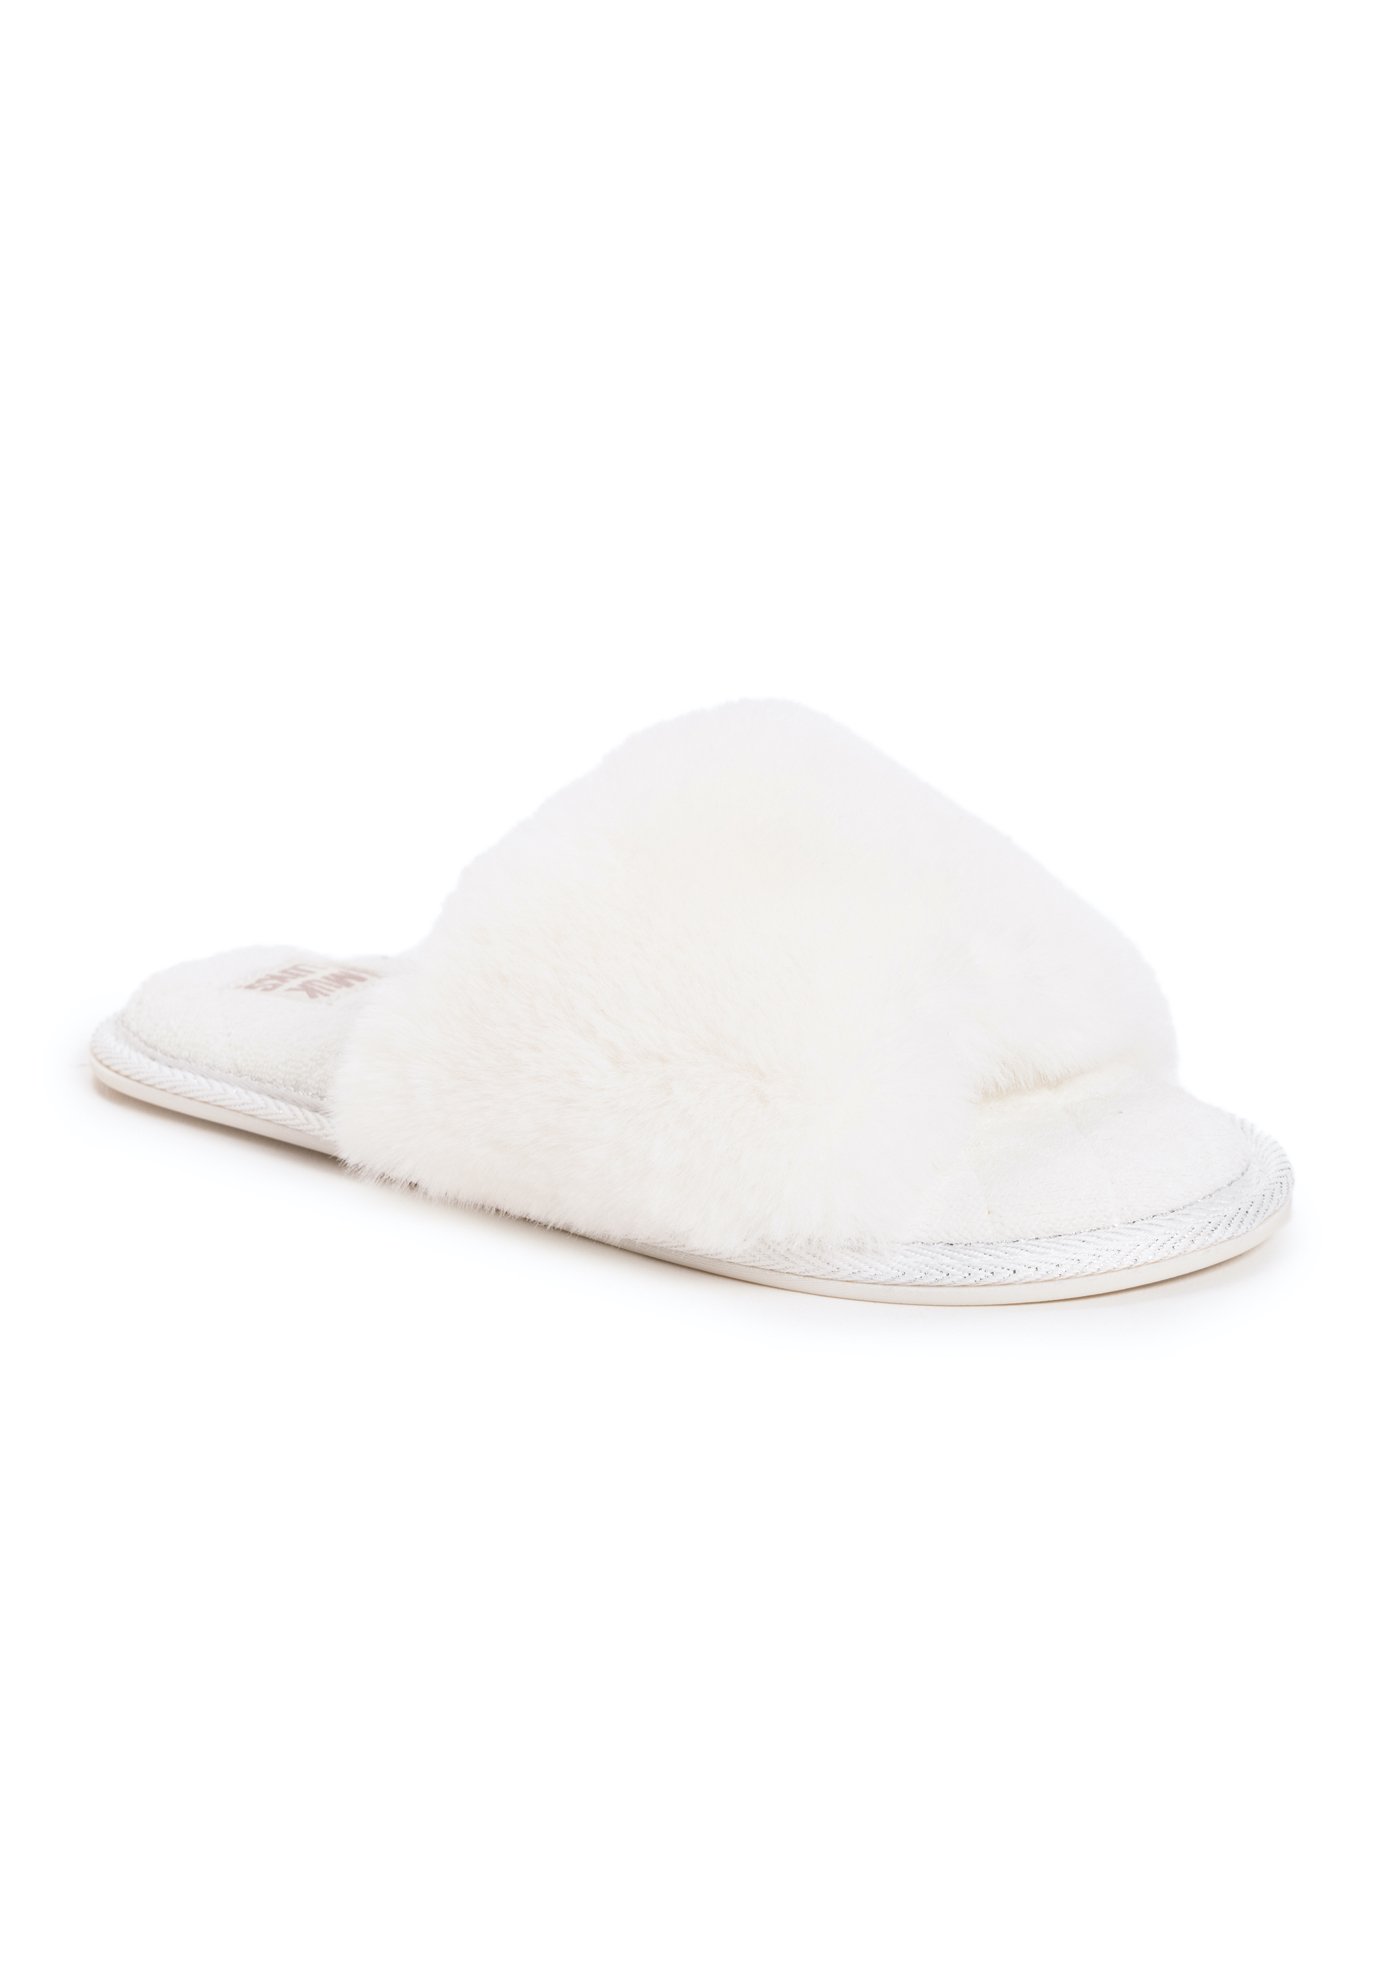 Sariah Slide Slippers,